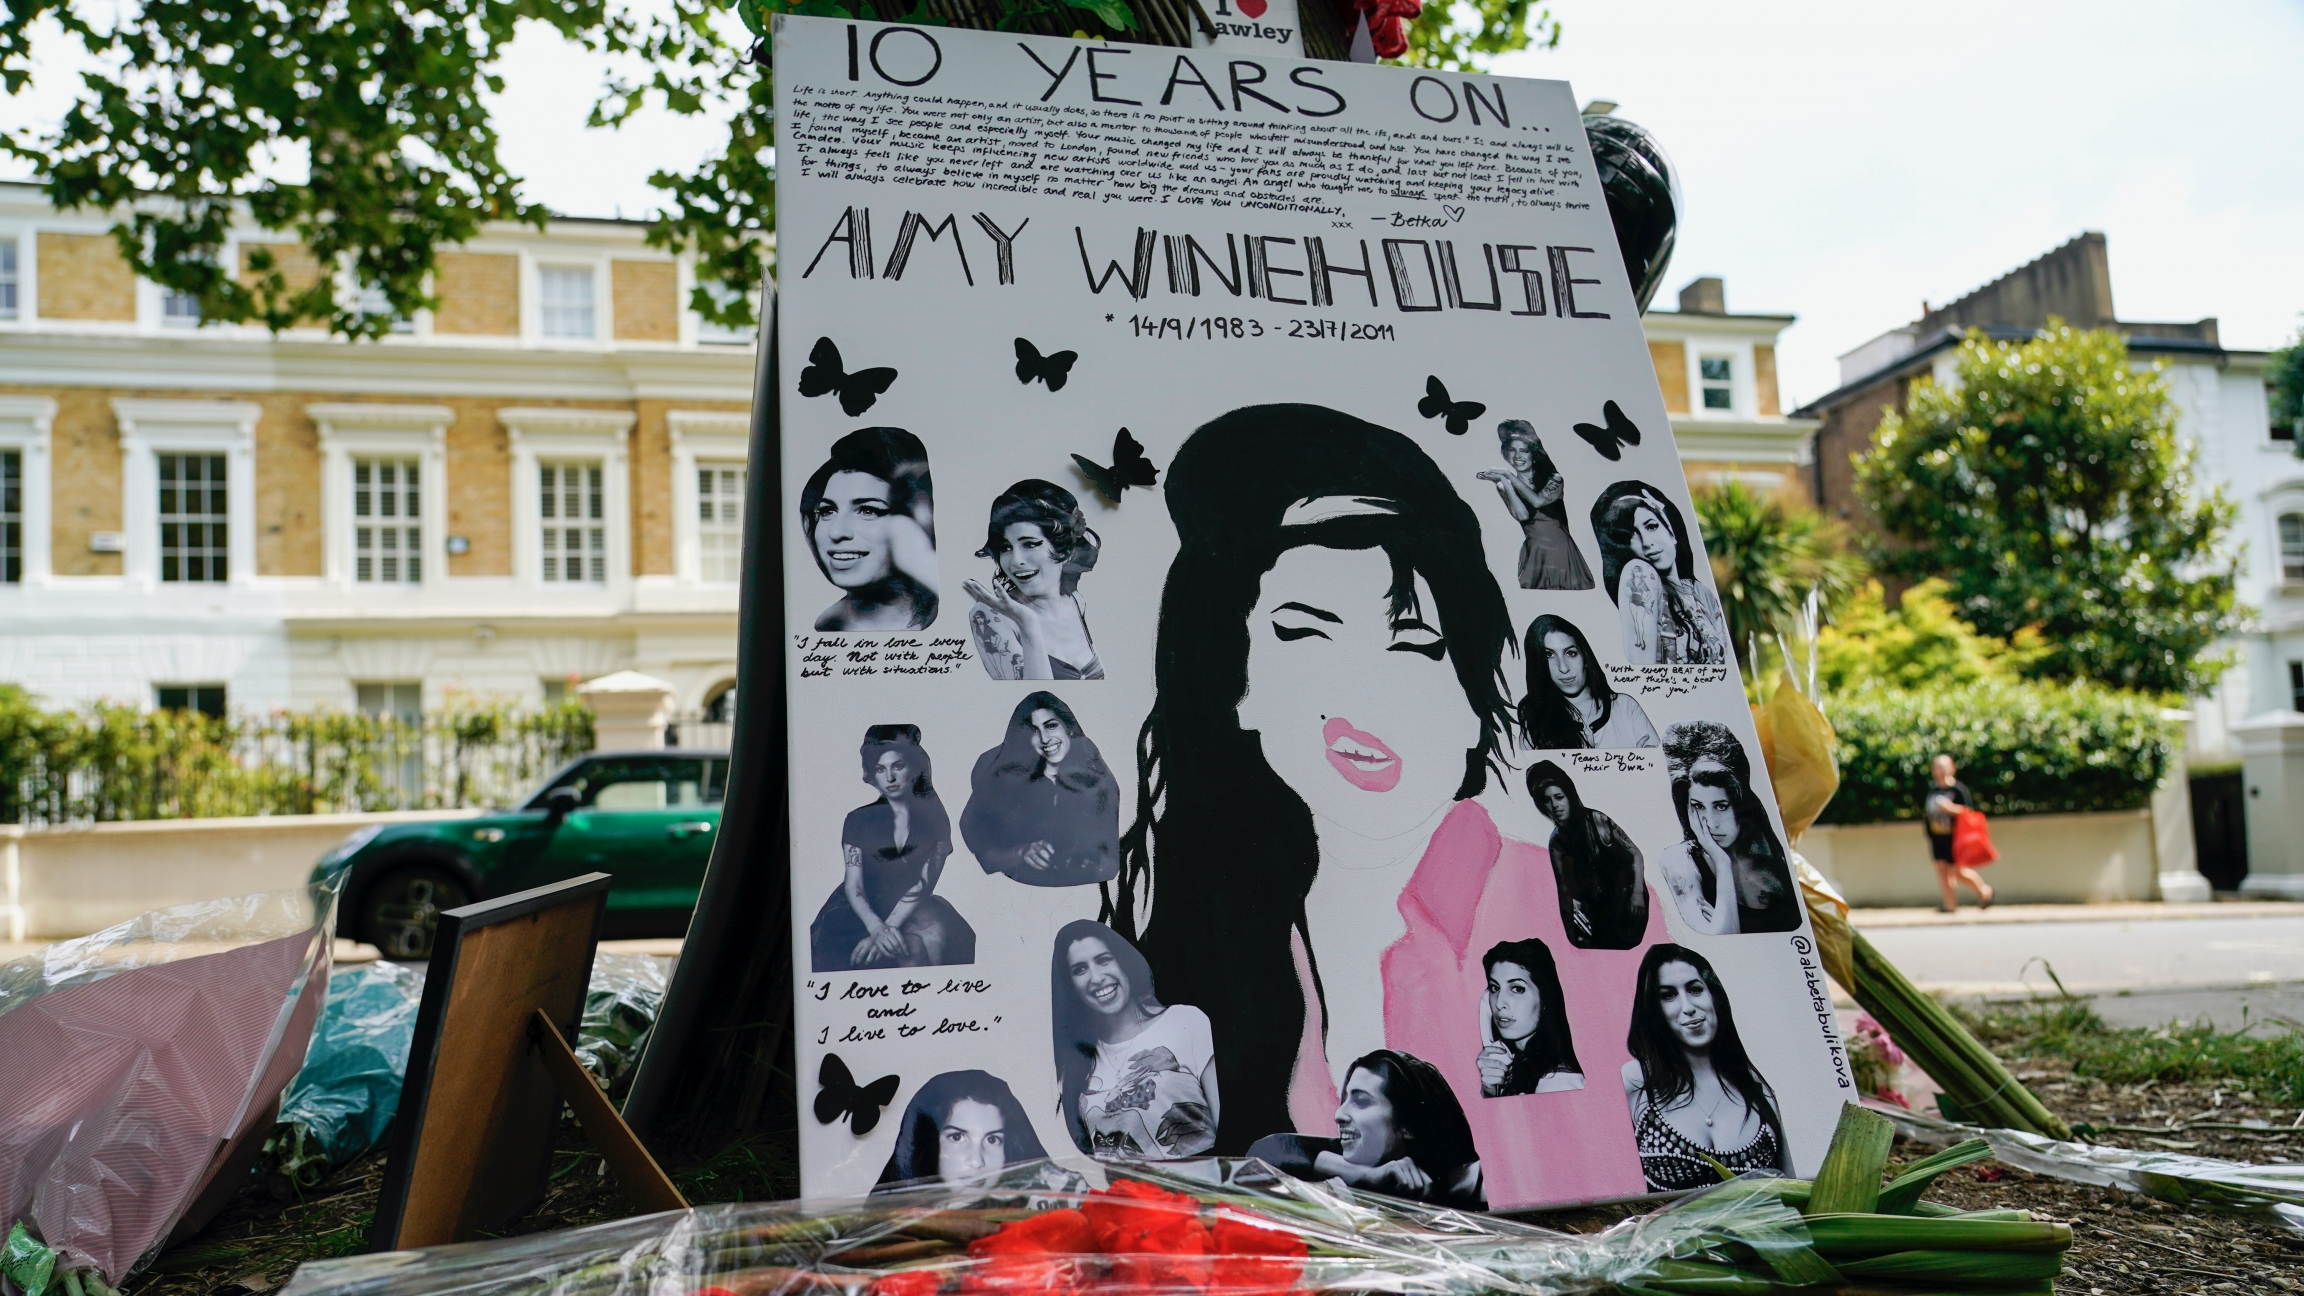 Tributes left outside the former home of Amy Winehouse in Camden, London, Friday, July 23, 2021, on the 10th anniversary of the iconic British singer's death from accidental alcohol poisoning.